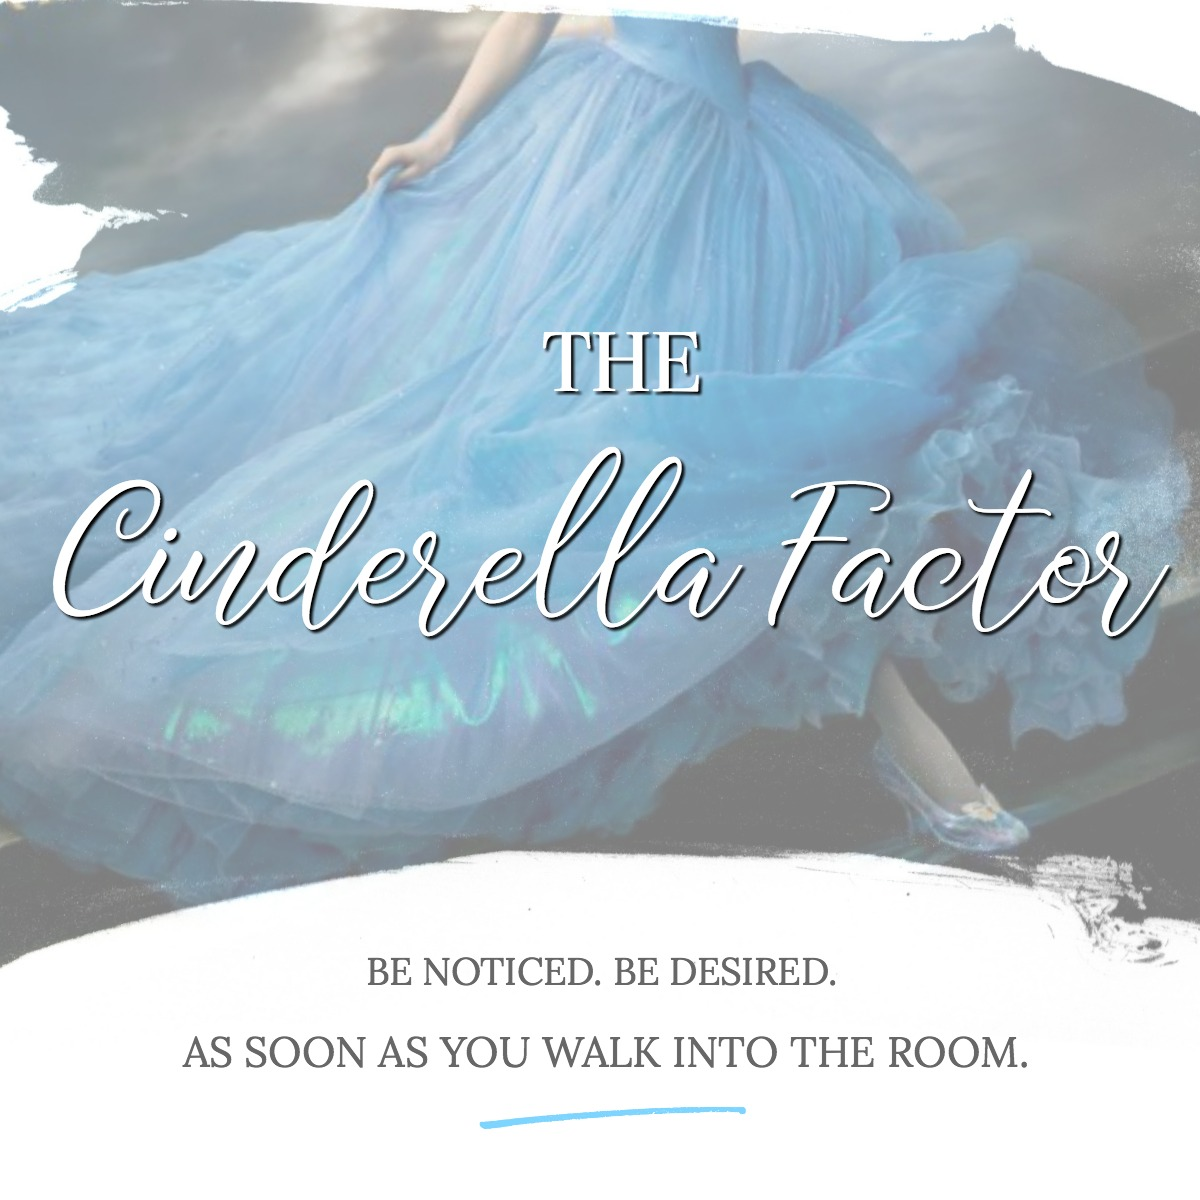 cinderella factor cover.jpg